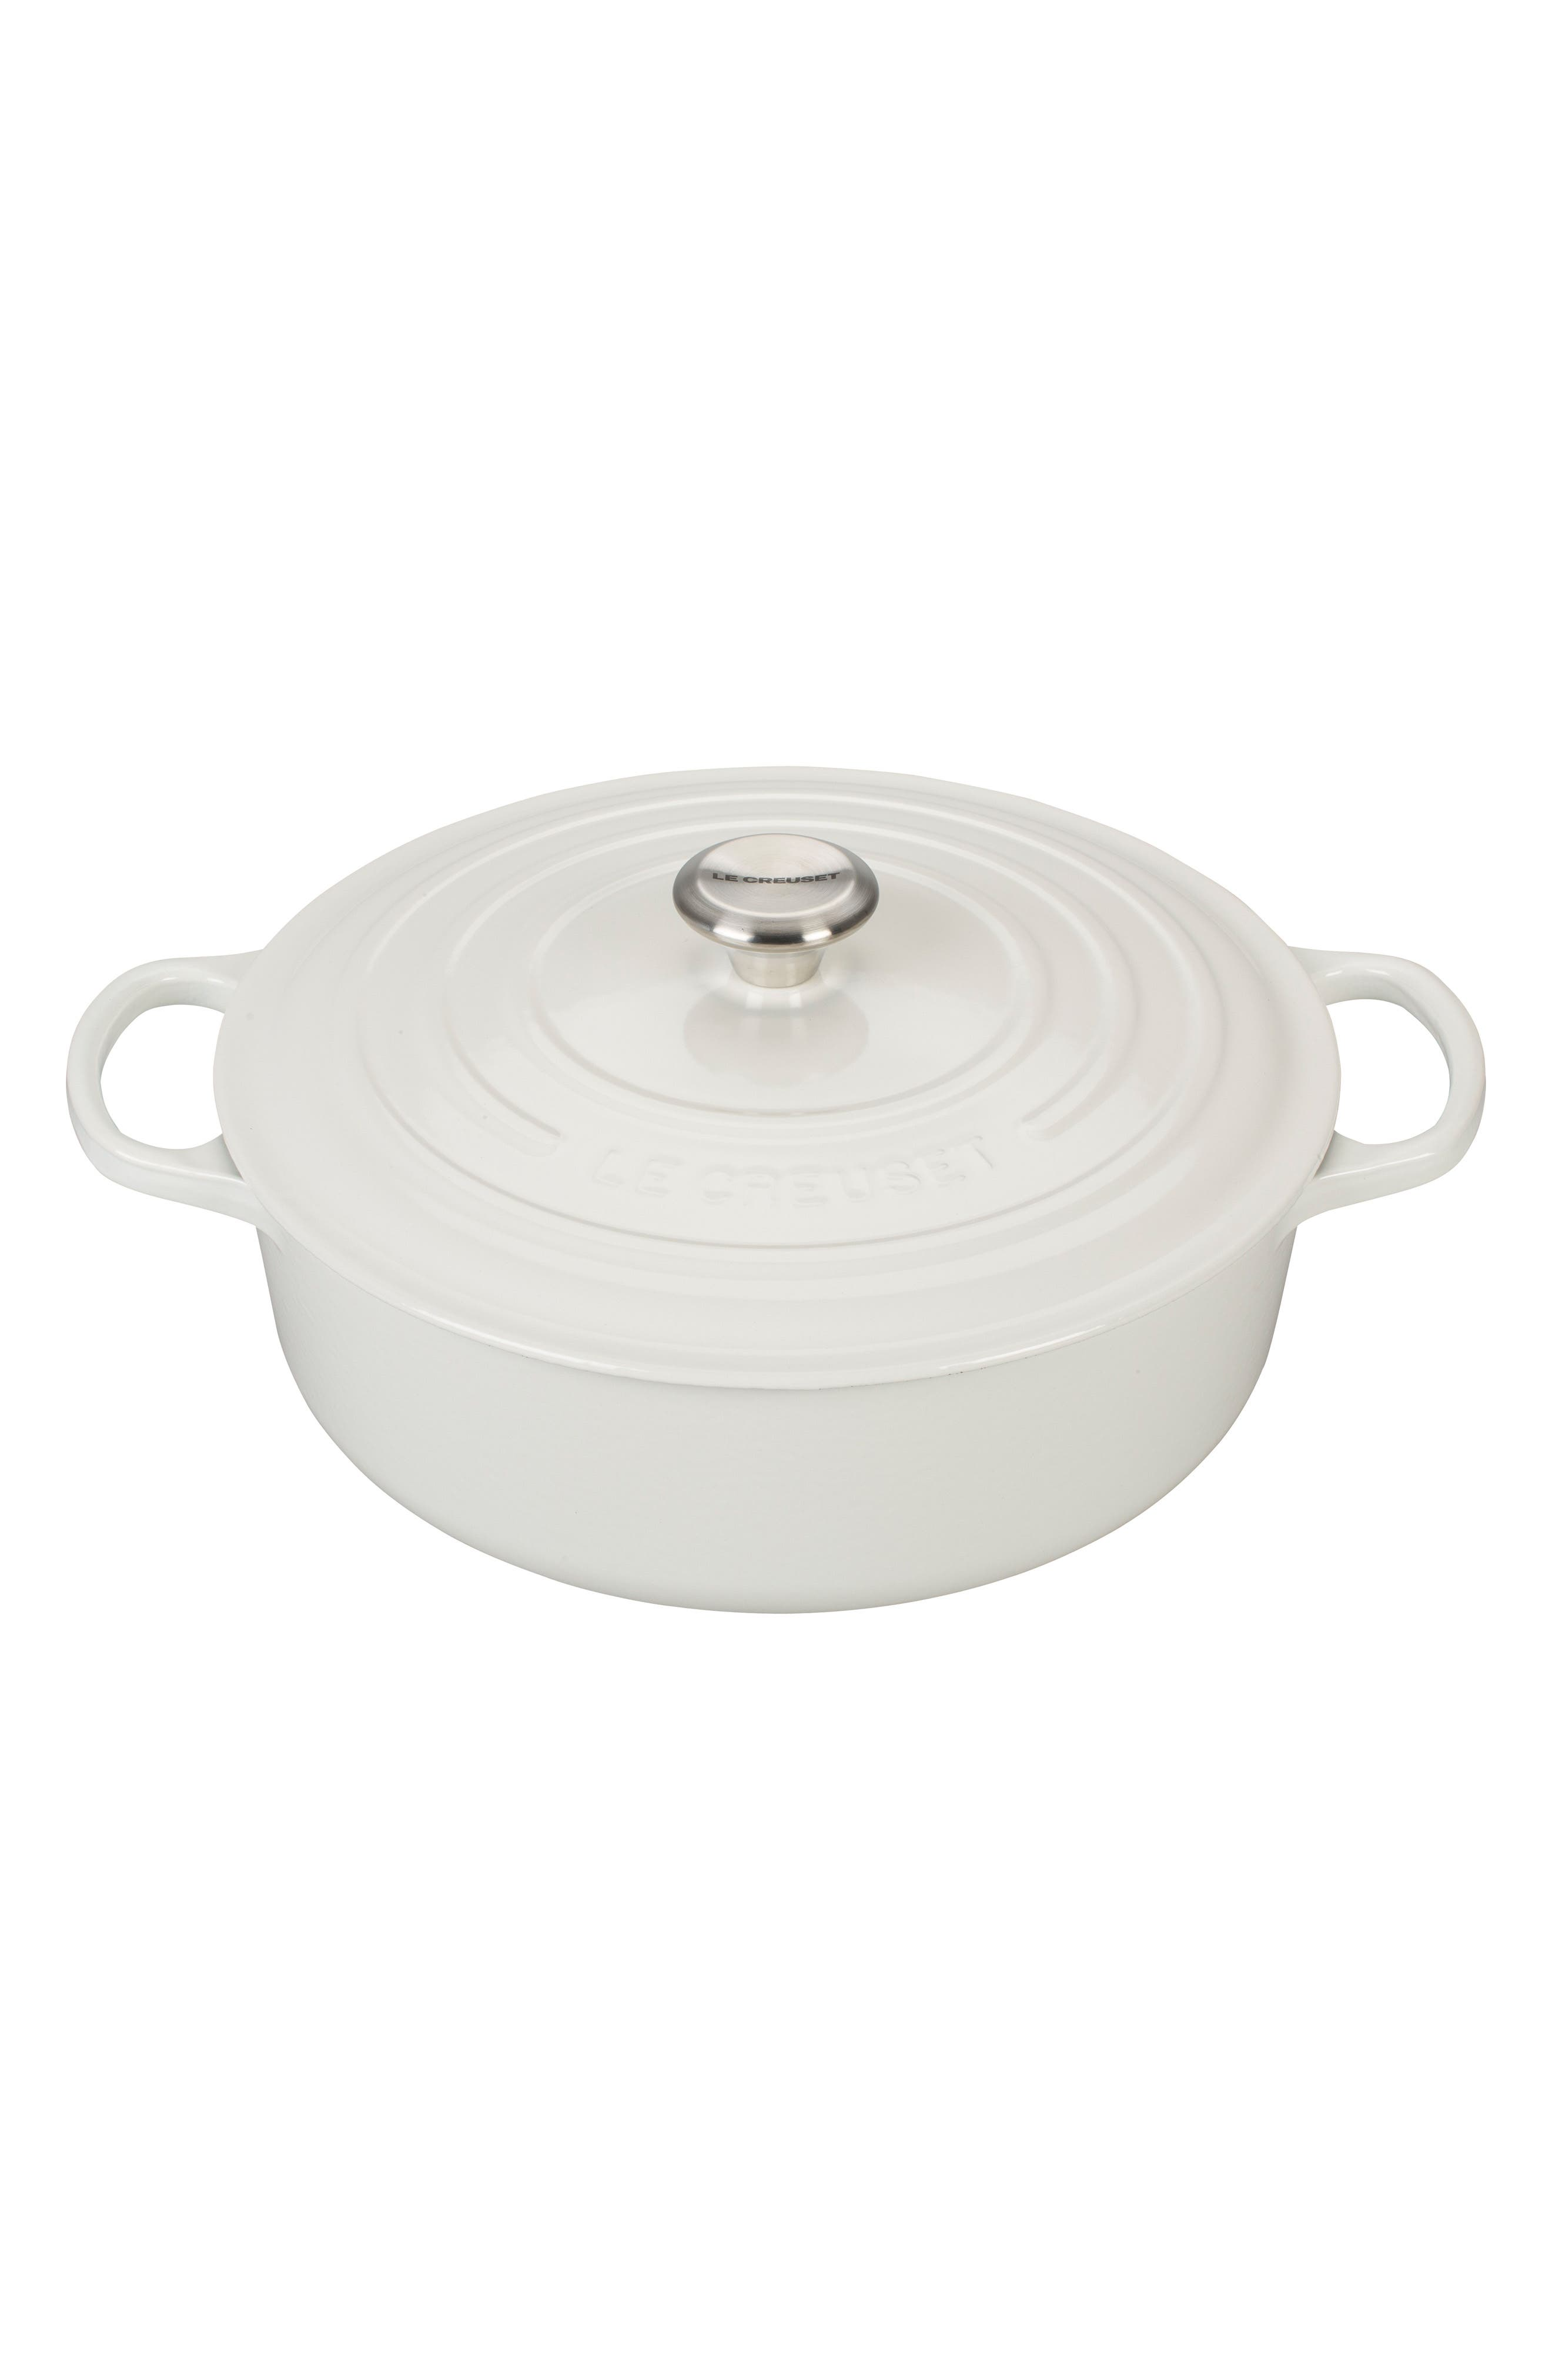 Signature 6 3/4-Quart Round Wide French/Dutch Oven,                         Main,                         color, 100